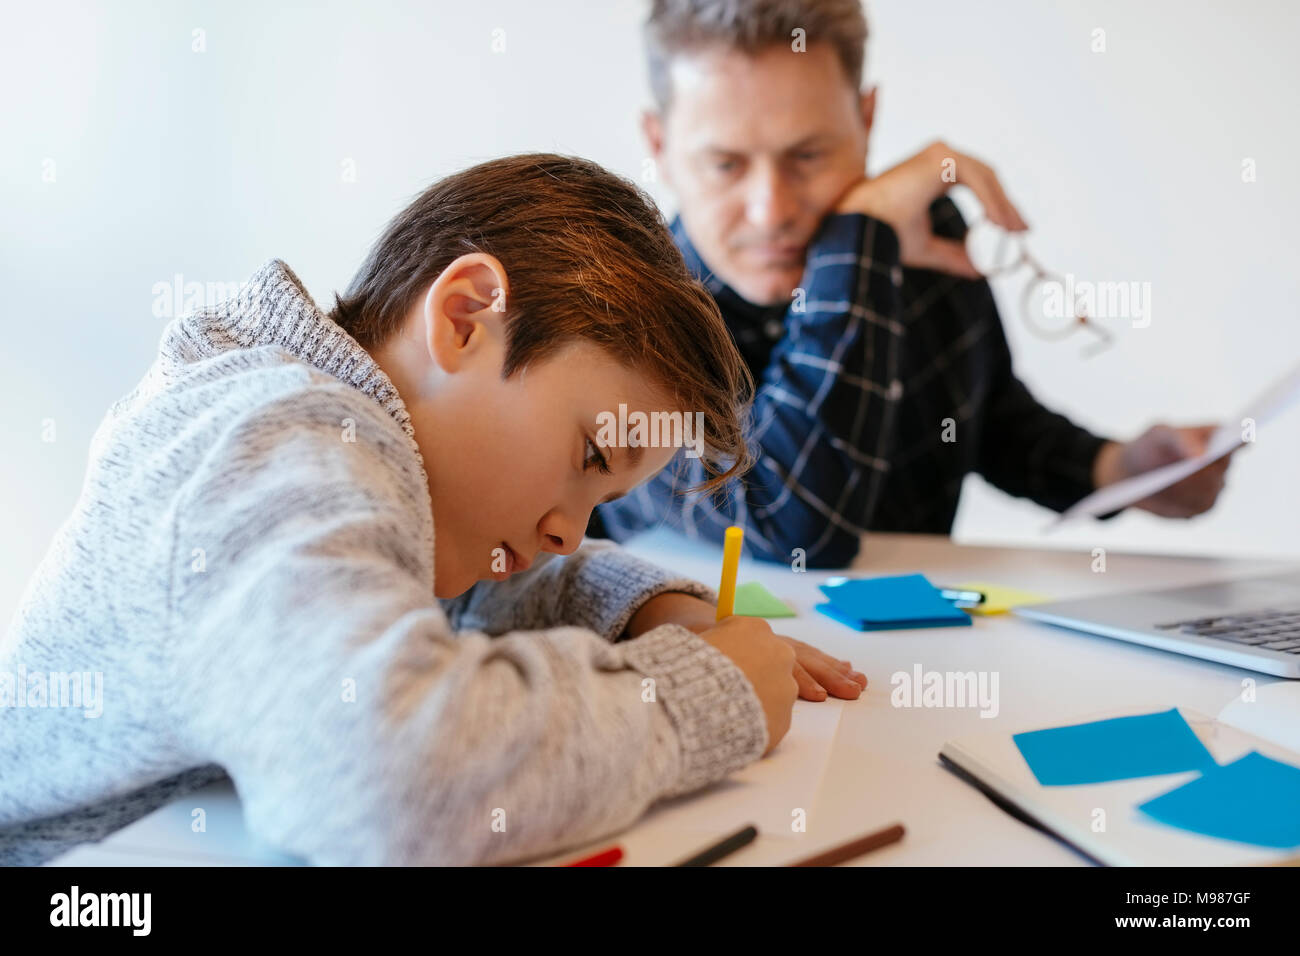 Businessman at desk in office looking at son drawing - Stock Image